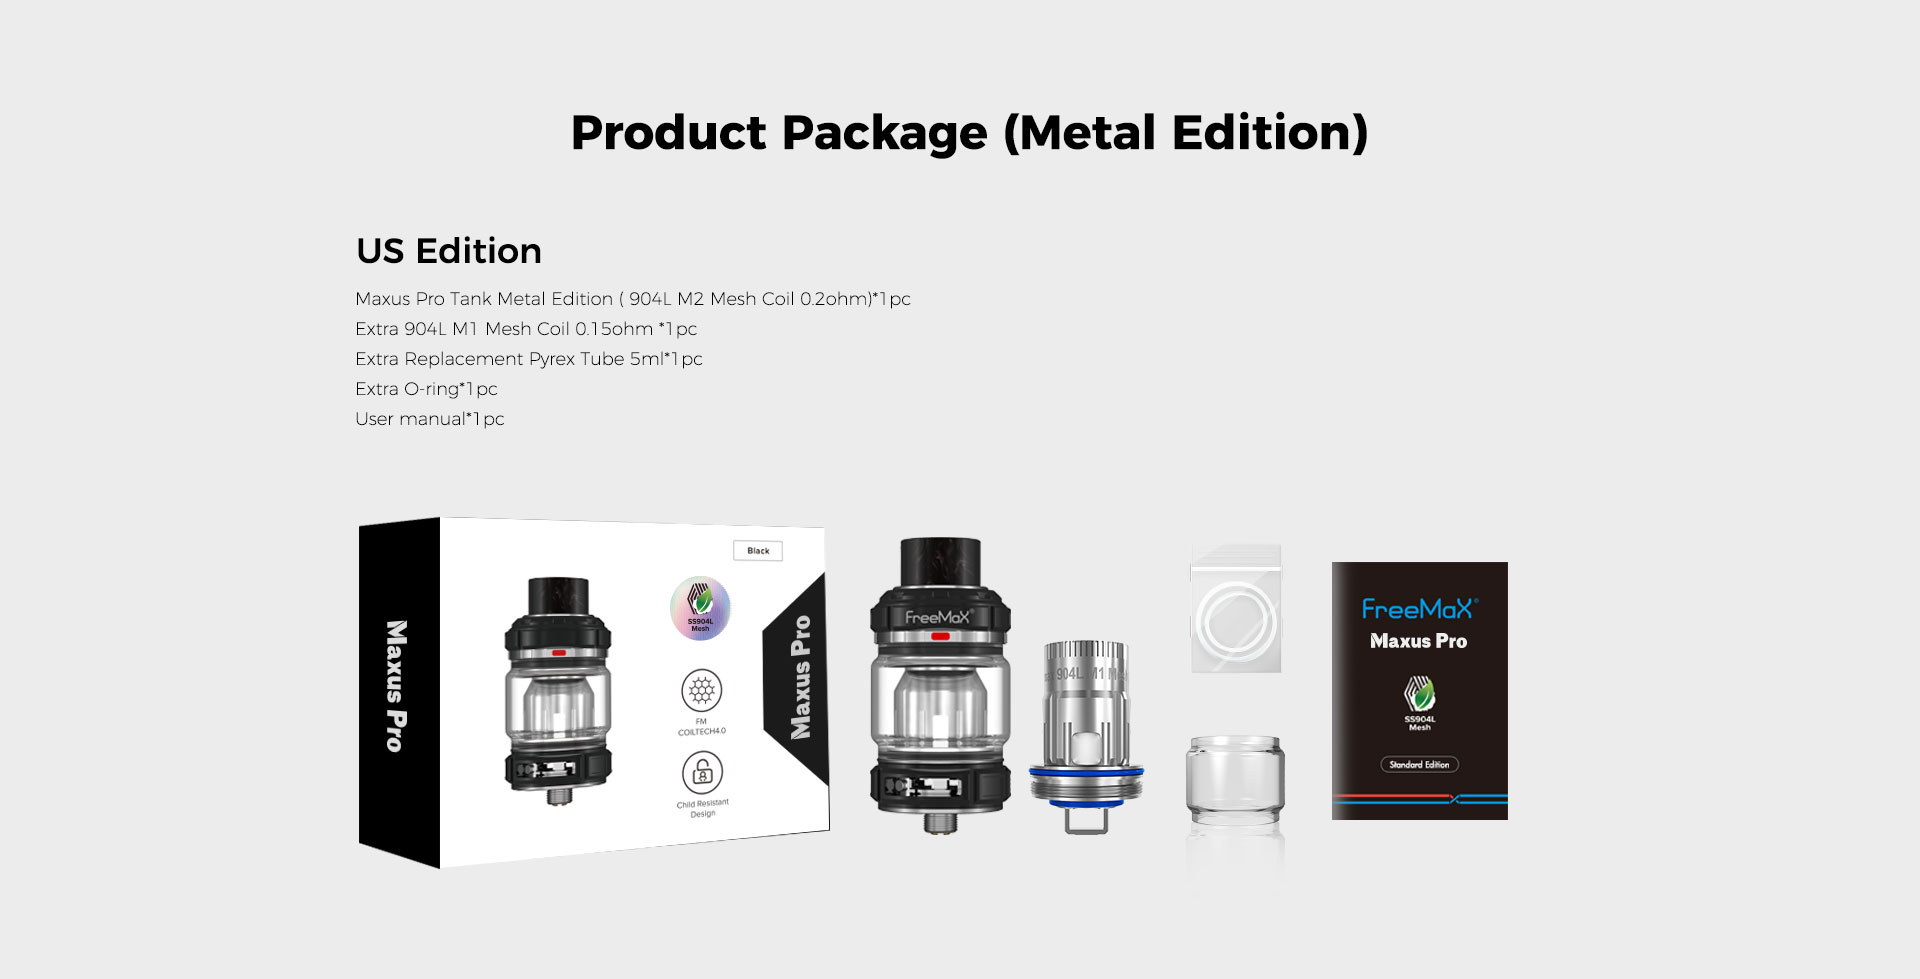 M Pro 2 Tank - Product Package(Metal Edition) US Edition